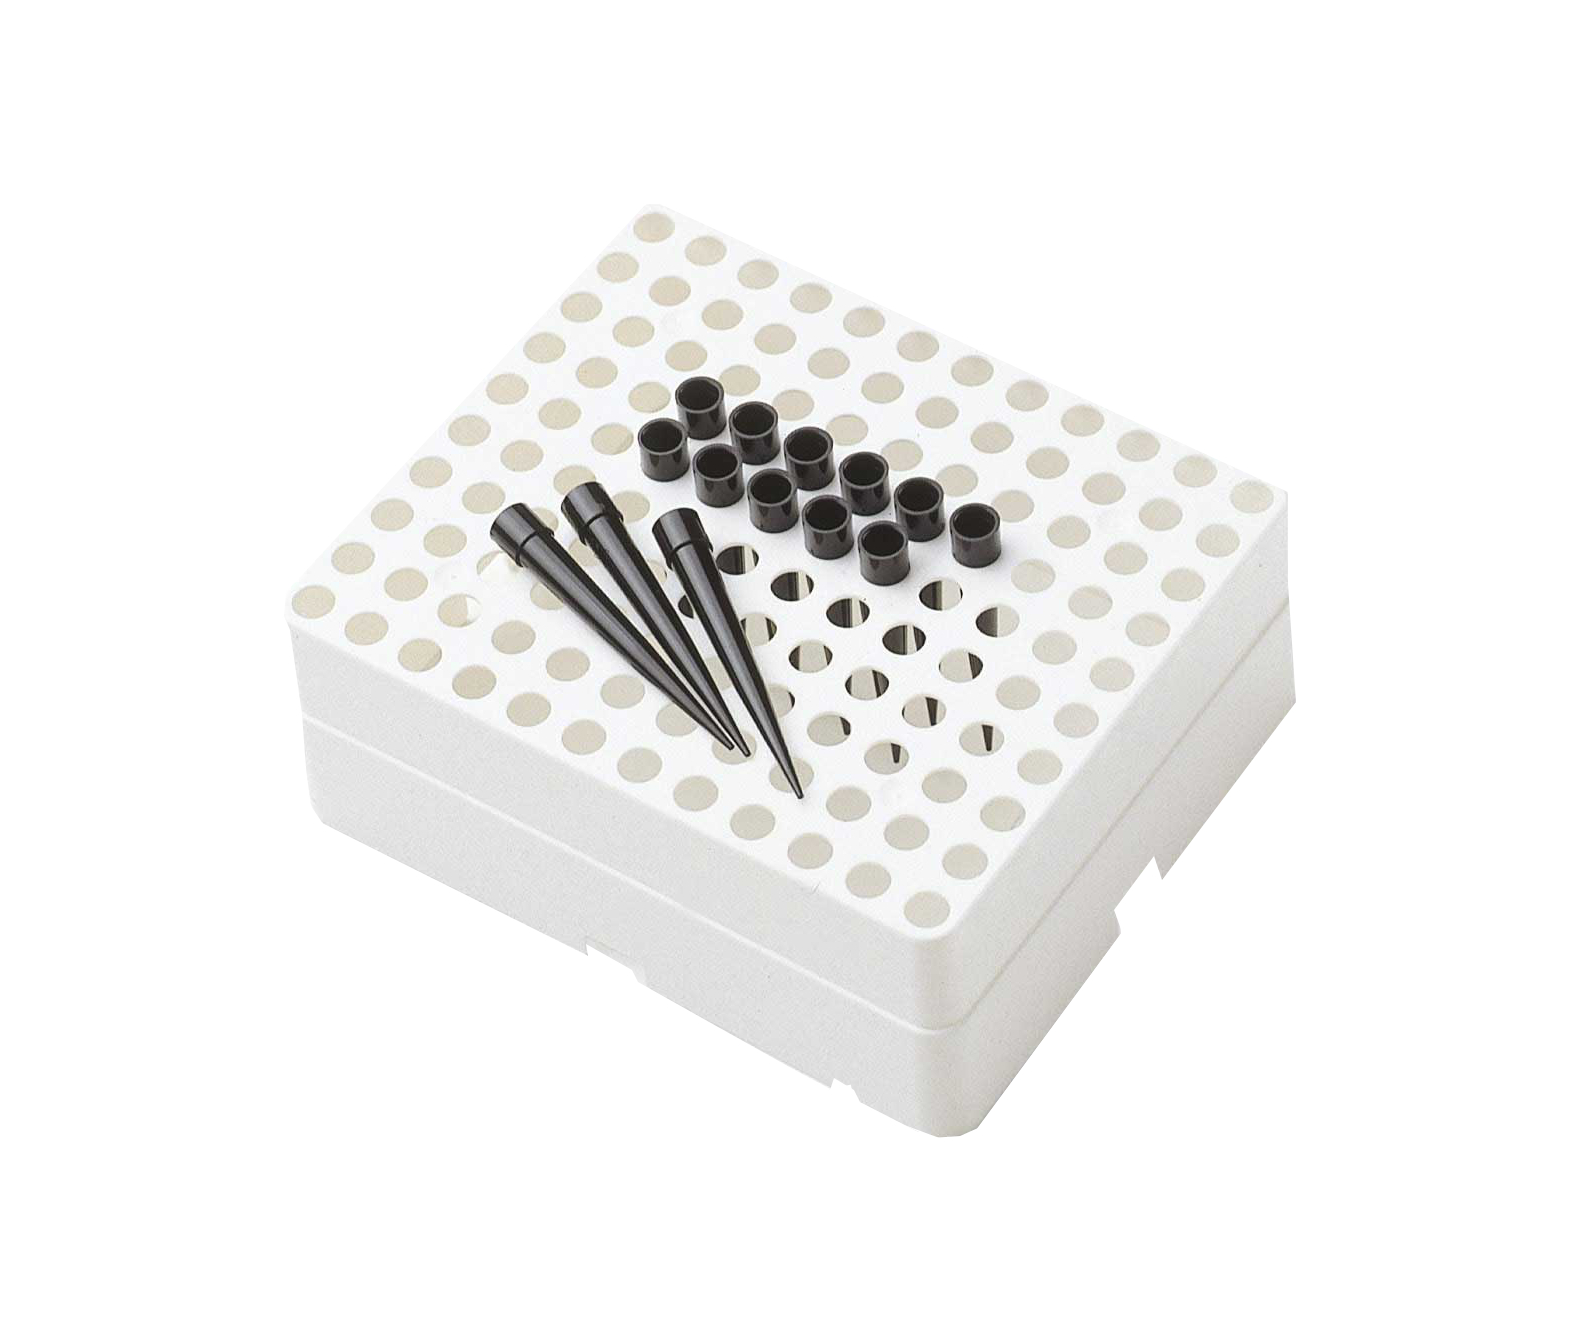 Borealis Bormed BJ868MO as a base for a new electrically conductive compound used in high precision pipettes.  Photo: © Premix Group